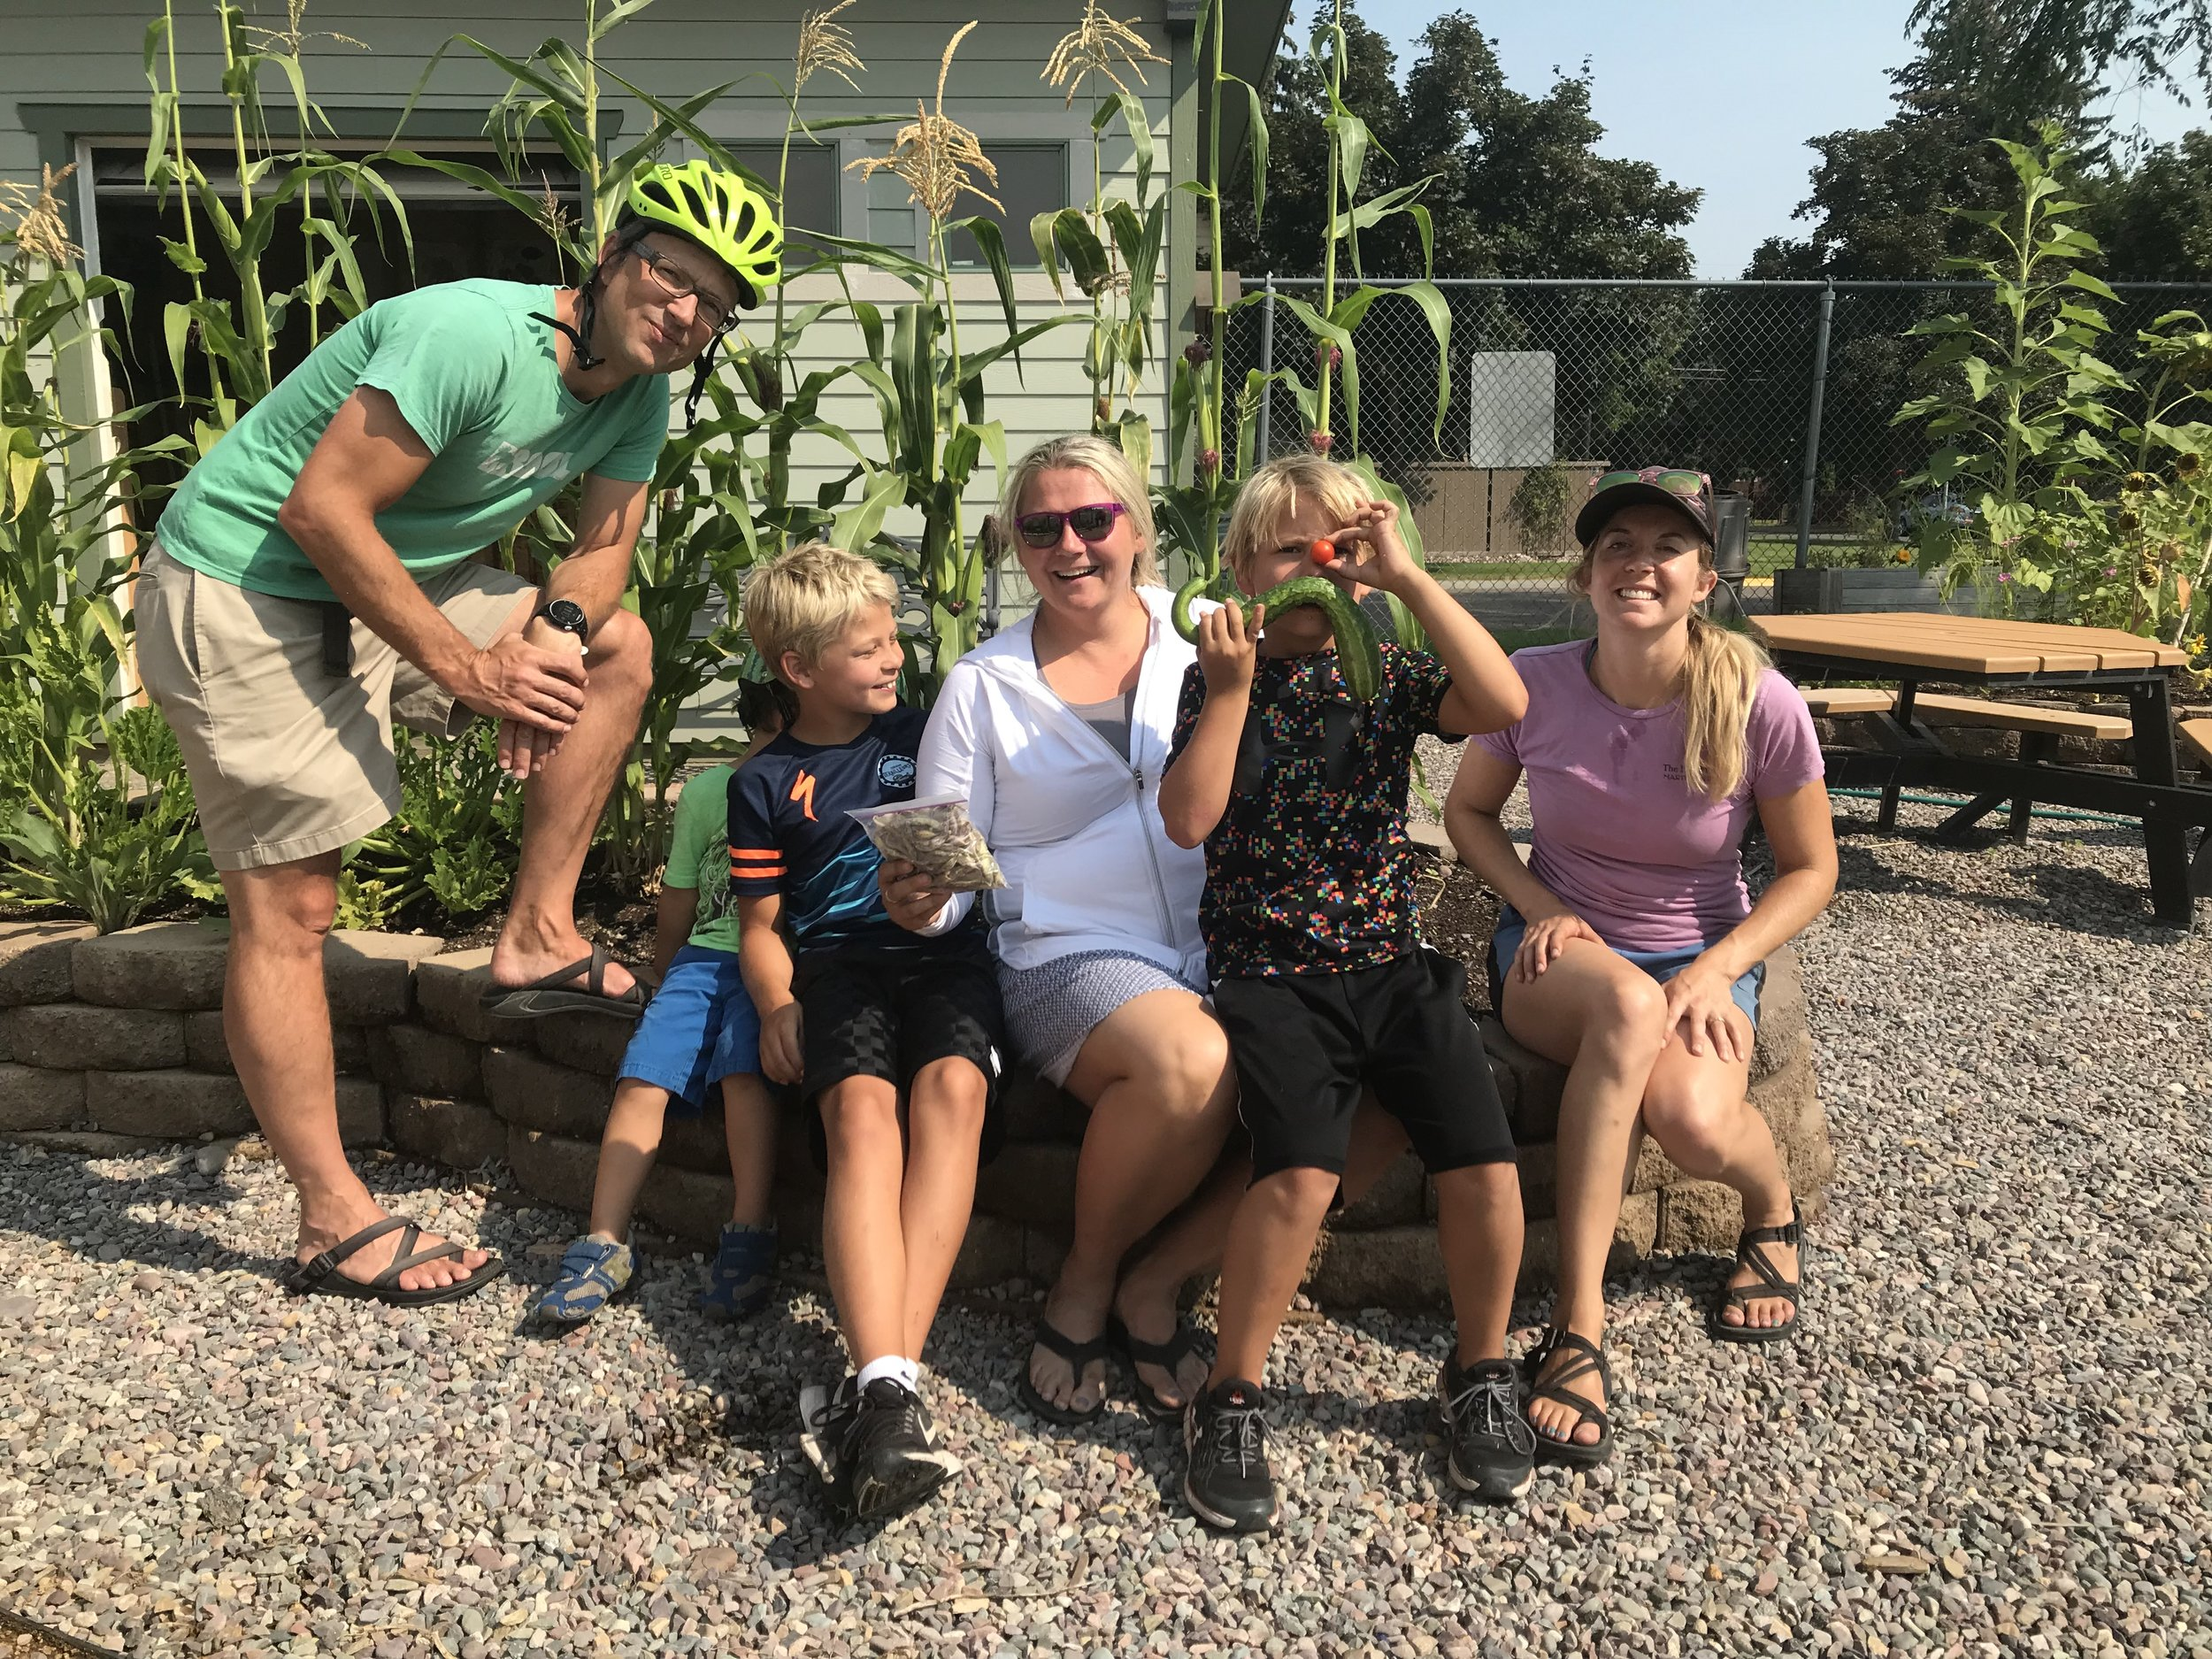 Lori with the Leeds-Knight family last season with some delicious veggies grown in the school garden.